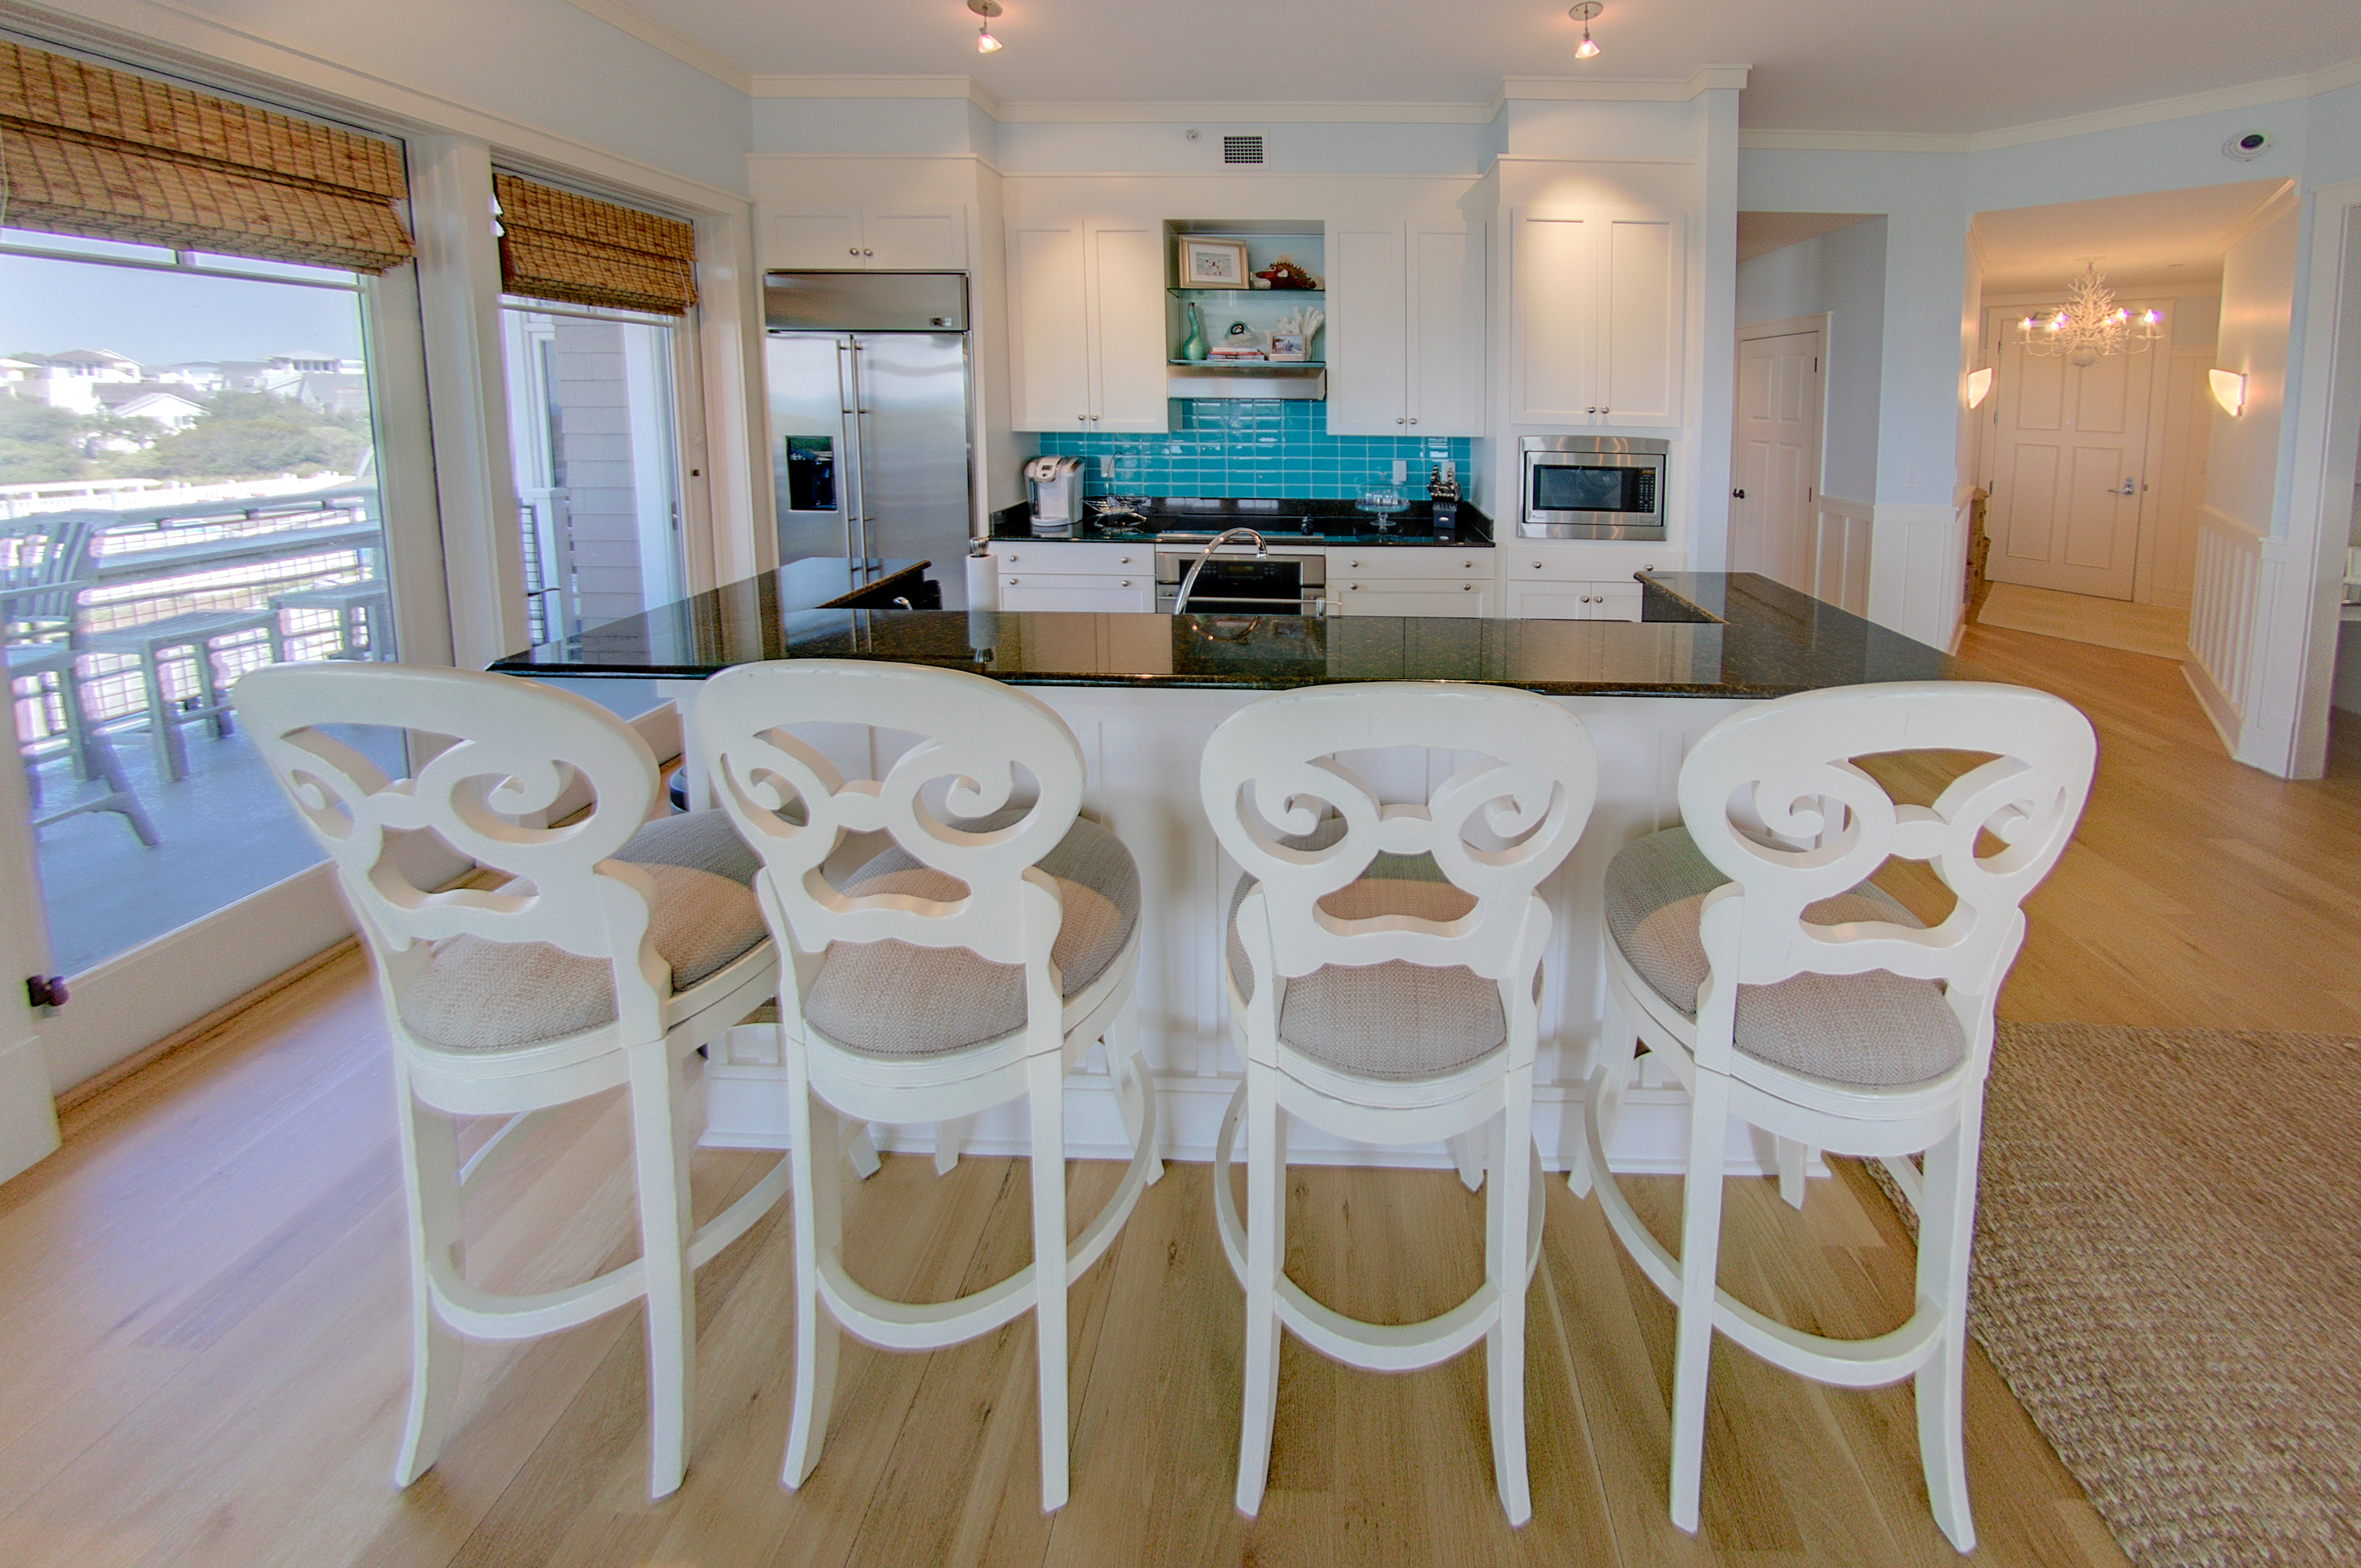 Barstool seating for 4 at the kitchen island